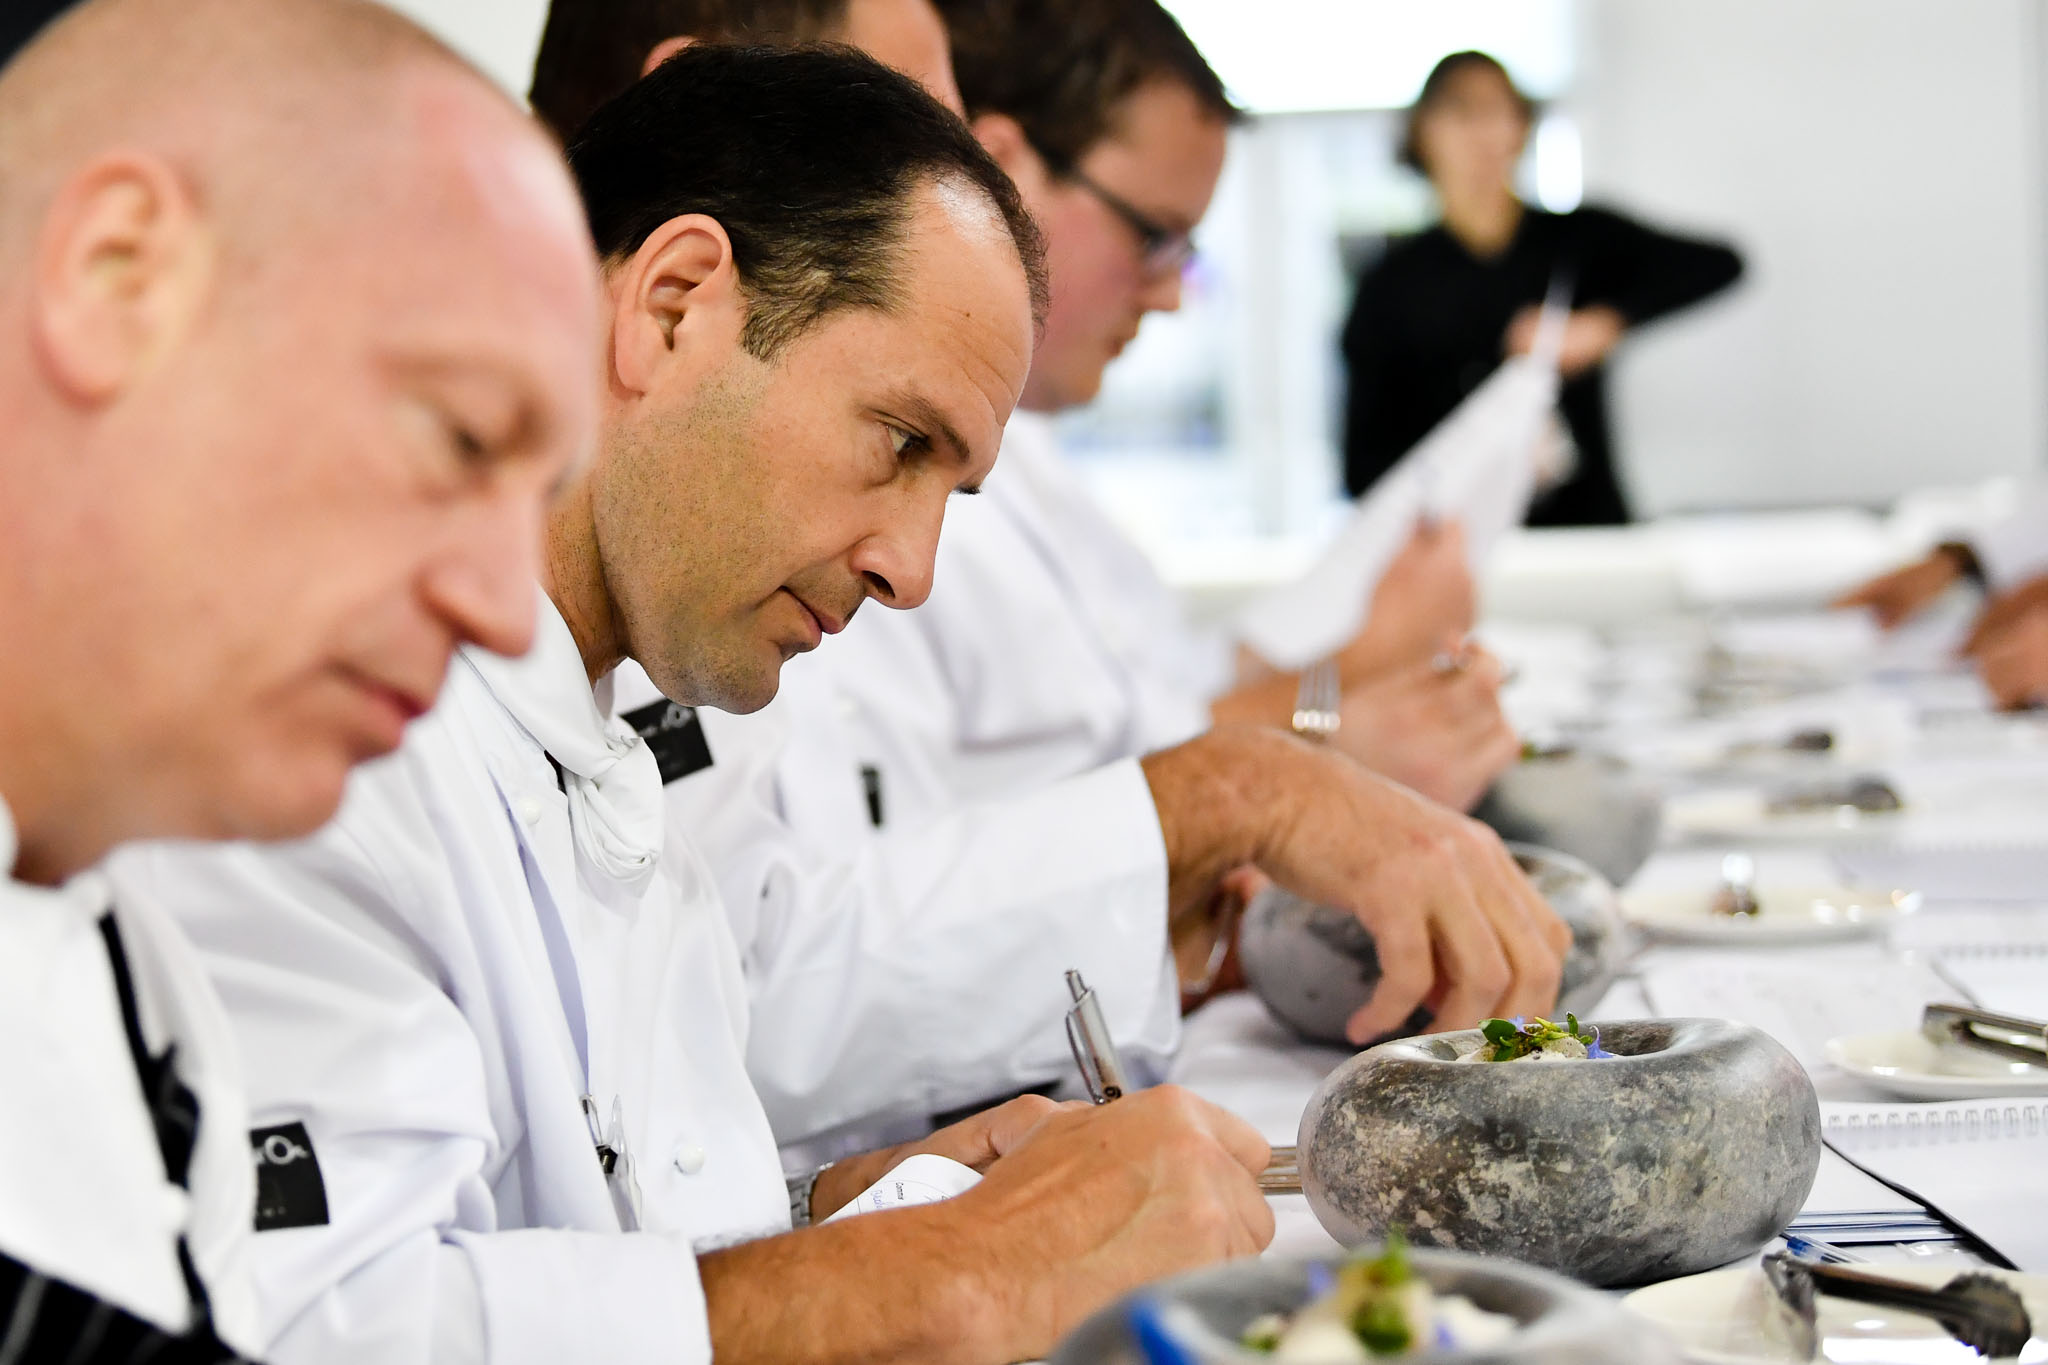 Melbourne, 30 May 2017 - The judges prepare to taste the fish dish of Michael Cole of the Georgie Bass Café & Cookery in Flinders at the Australian selection trials of the Bocuse d'Or culinary competition held during the Food Service Australia show at the Royal Exhibition Building in Melbourne, Australia. Photo Sydney Low